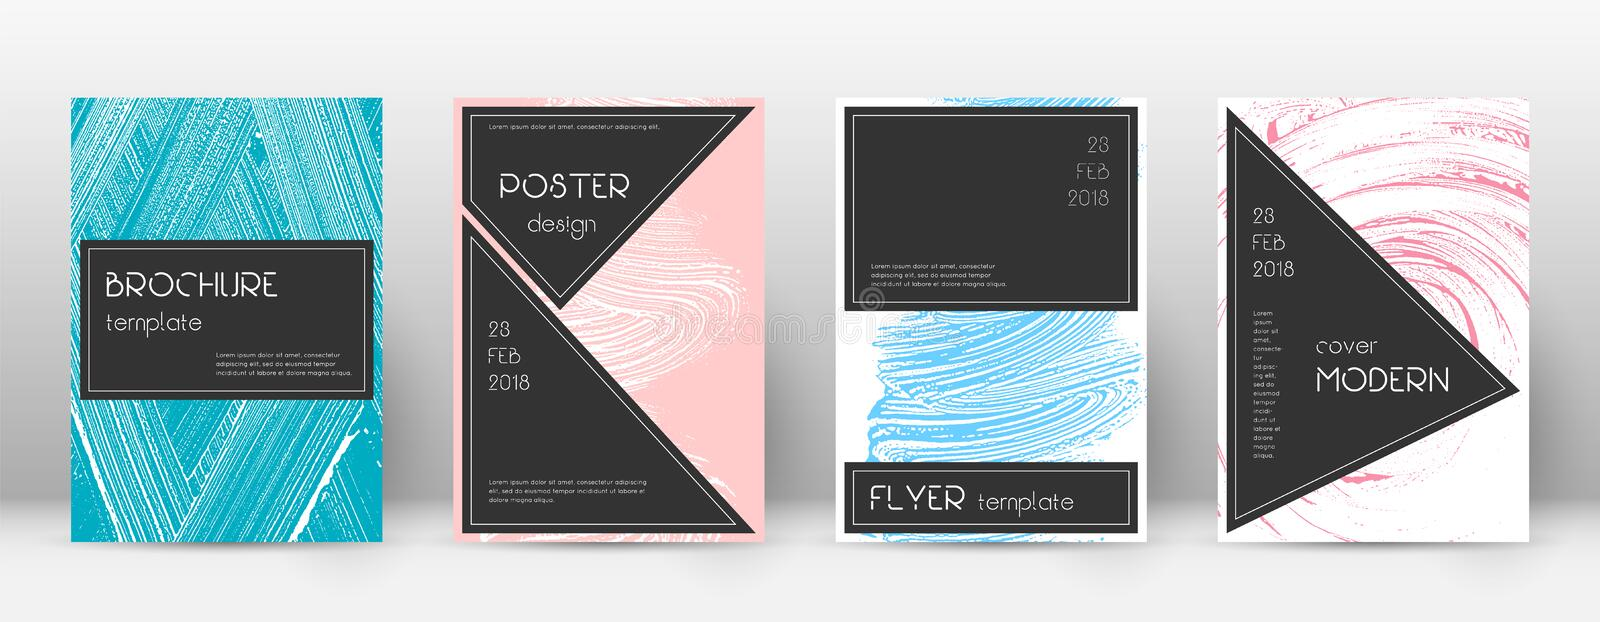 Cover page design template. Black brochure layout. royalty free illustration